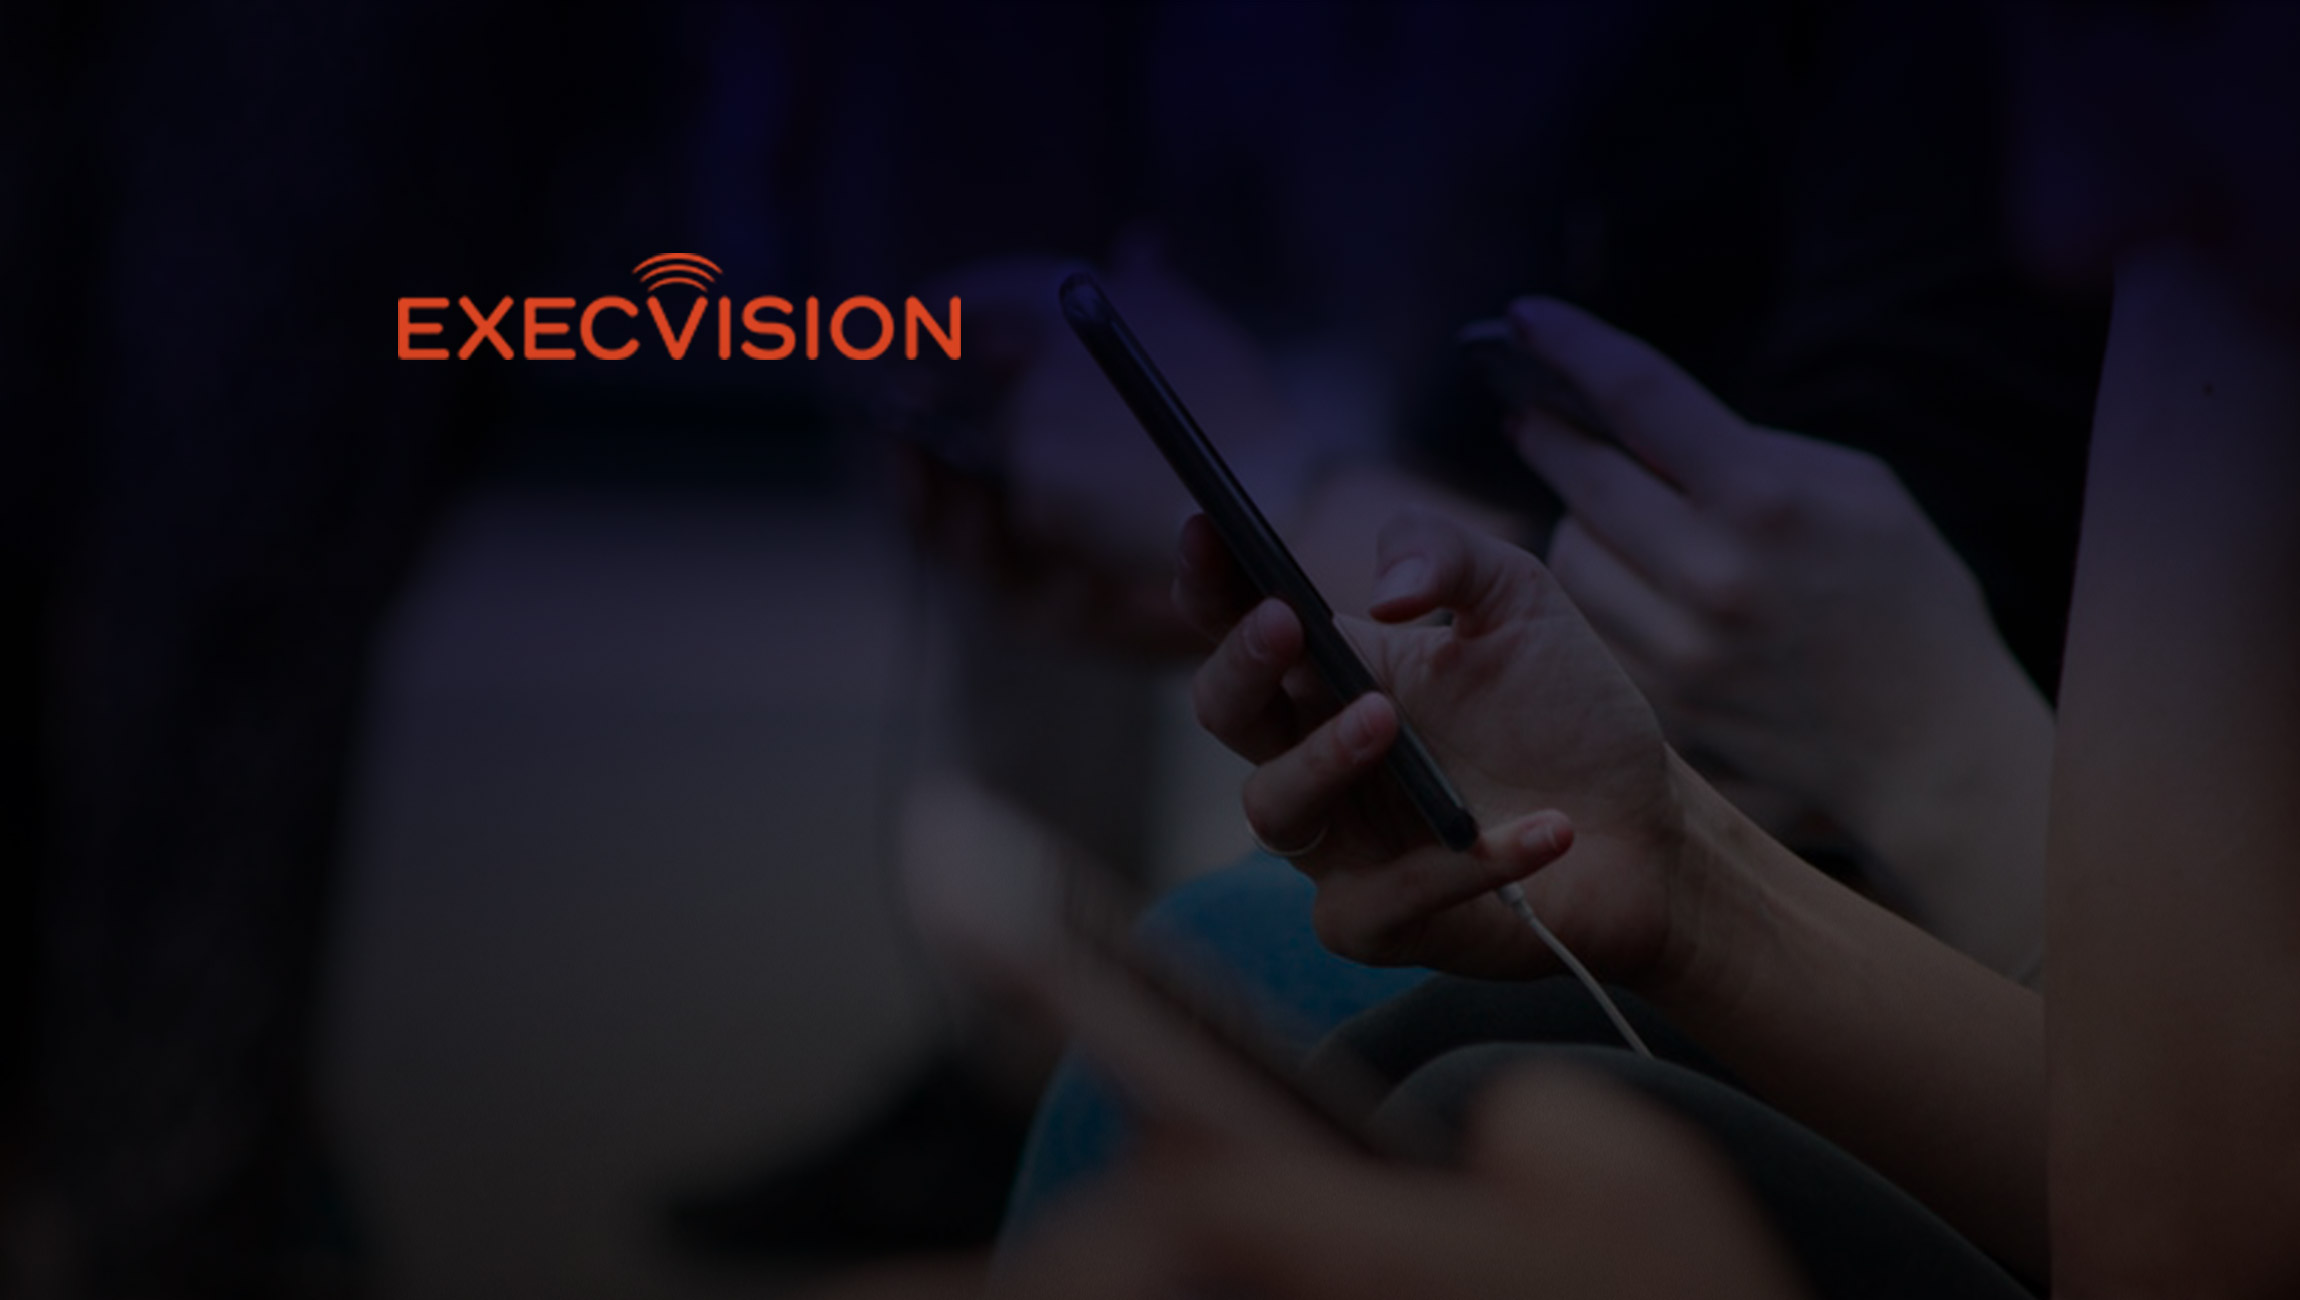 ExecVision Launches Smart Alerts, AI-Powered Notifications that Auto-Surface Coachable Moments in Customer Conversations